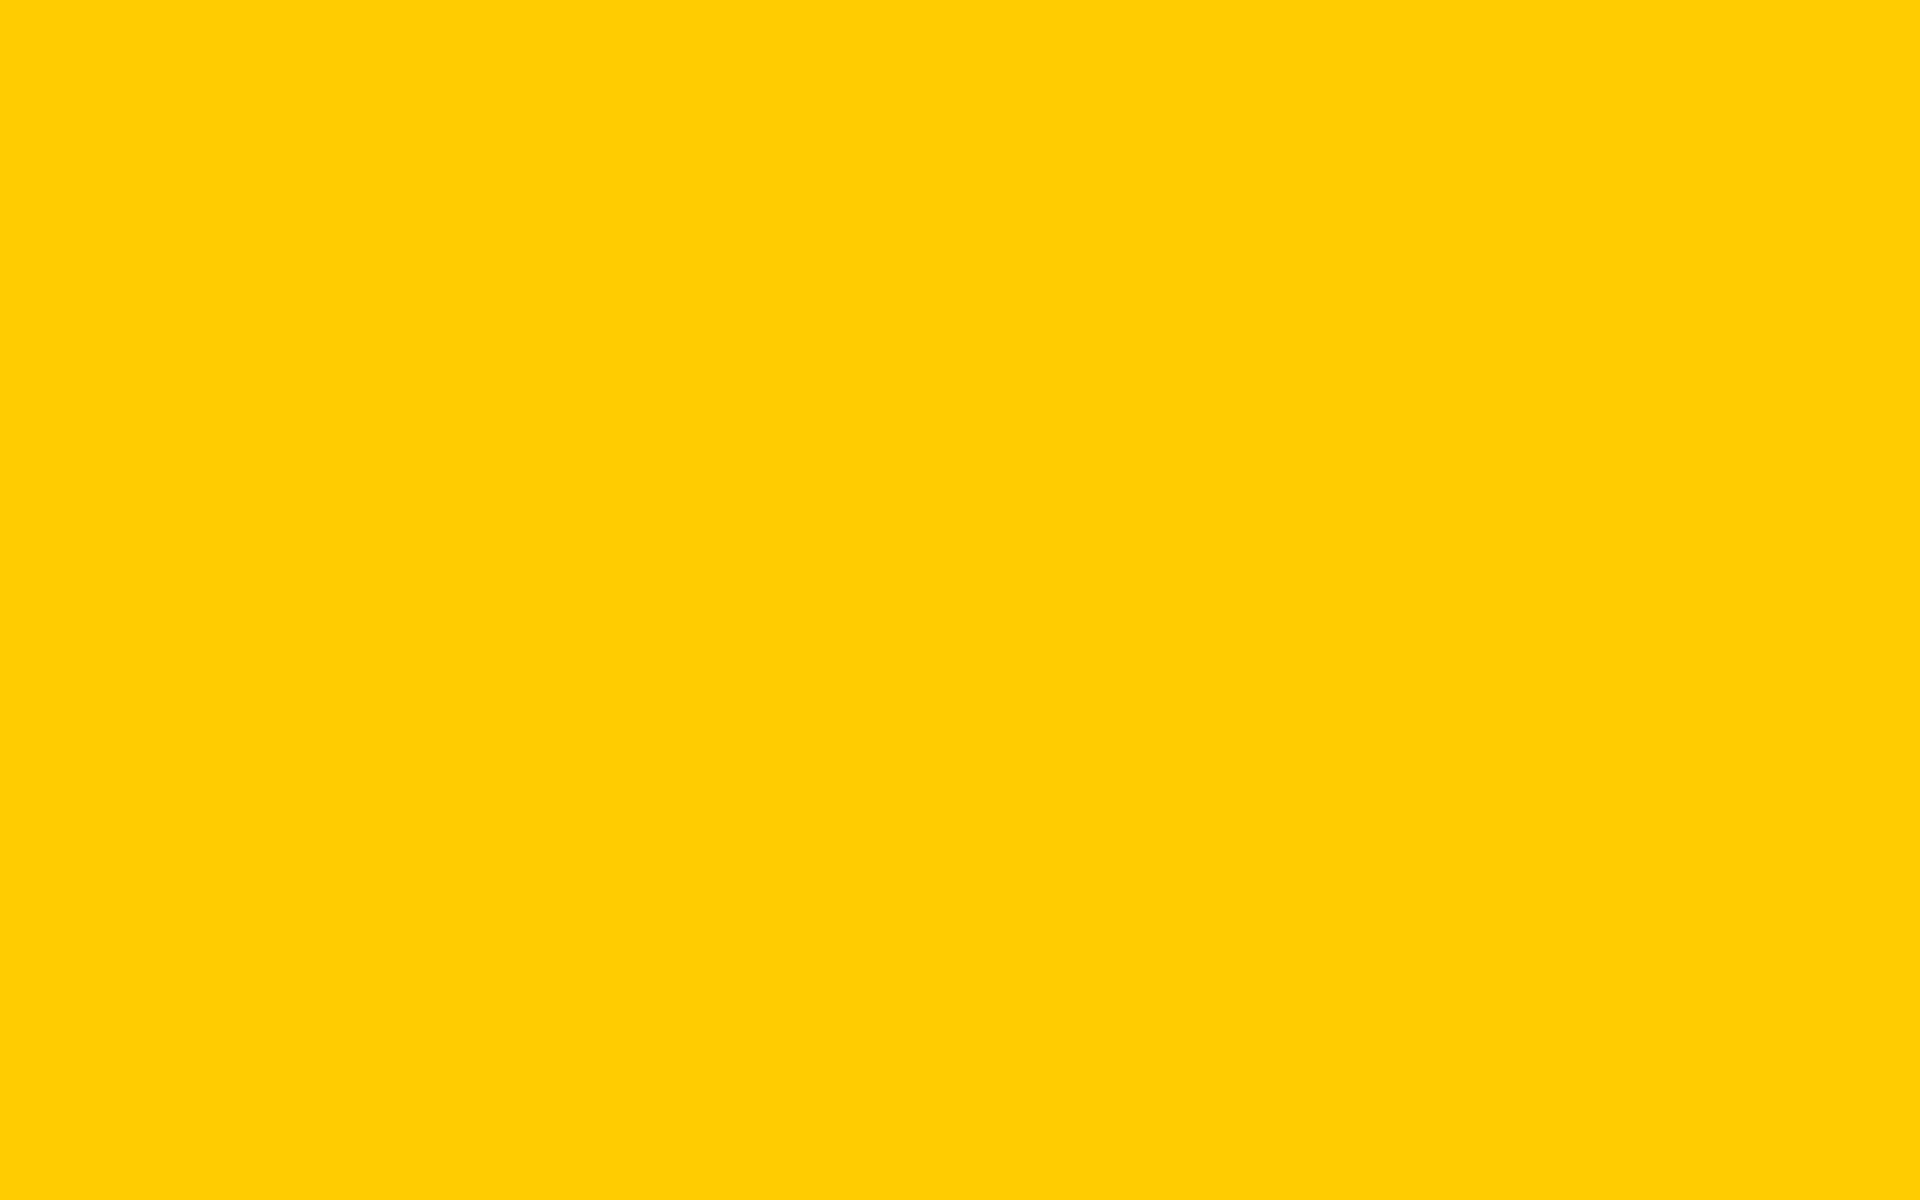 1920x1200 Tangerine Yellow Solid Color Background